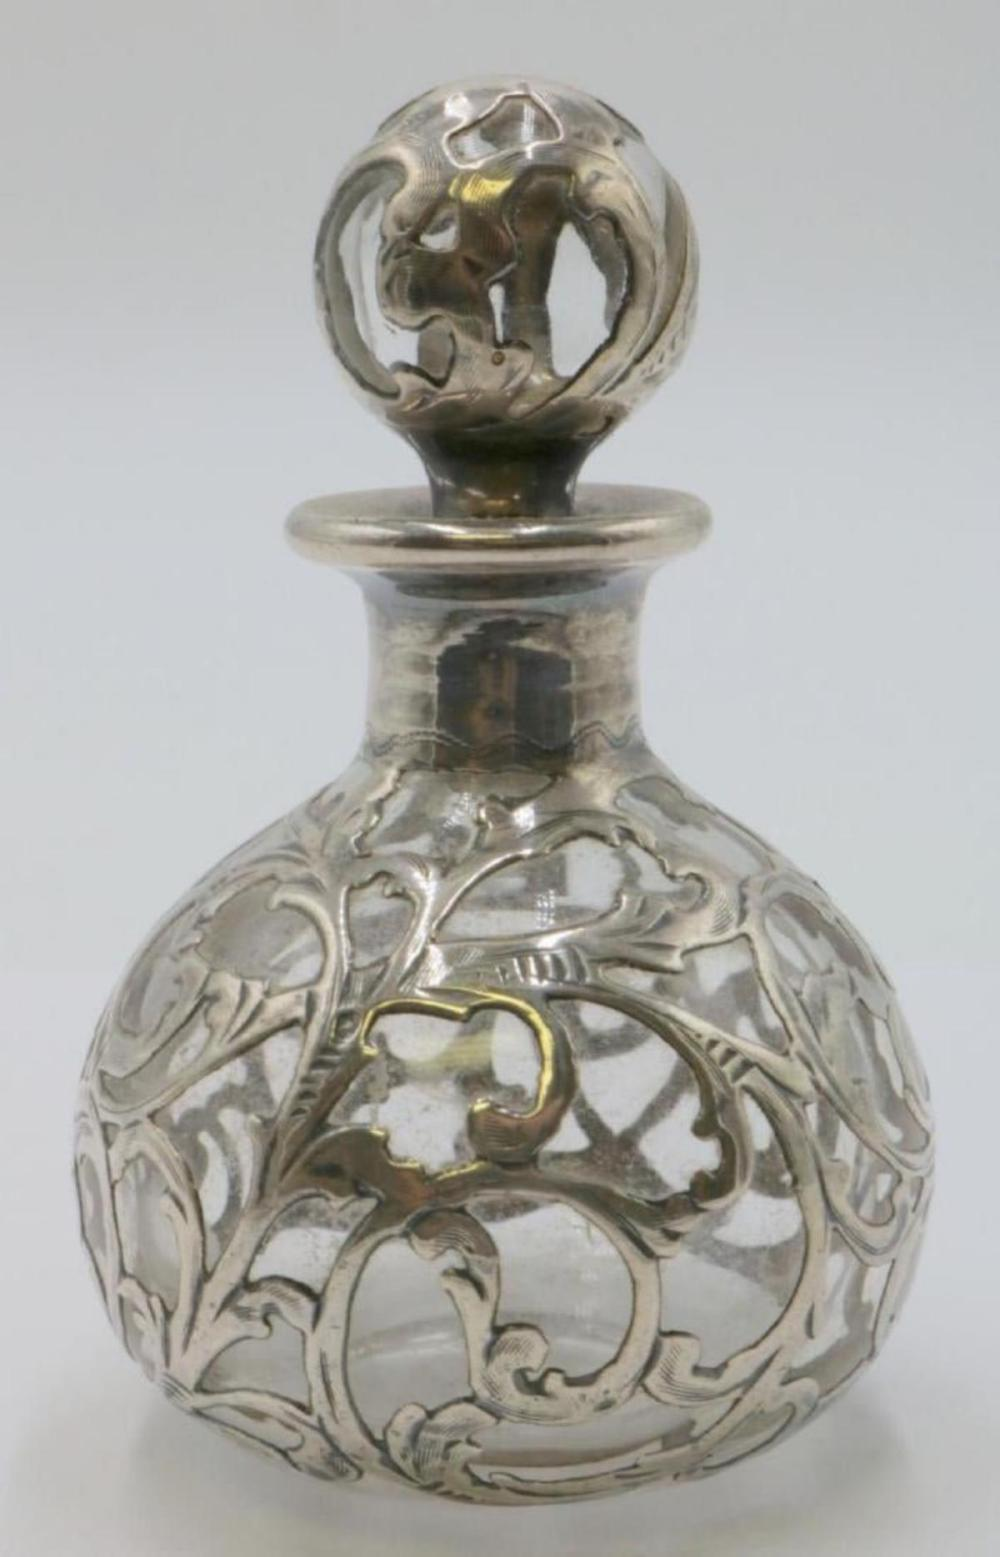 Early 20th C. Sterling Overlay Glass Scent Bottle